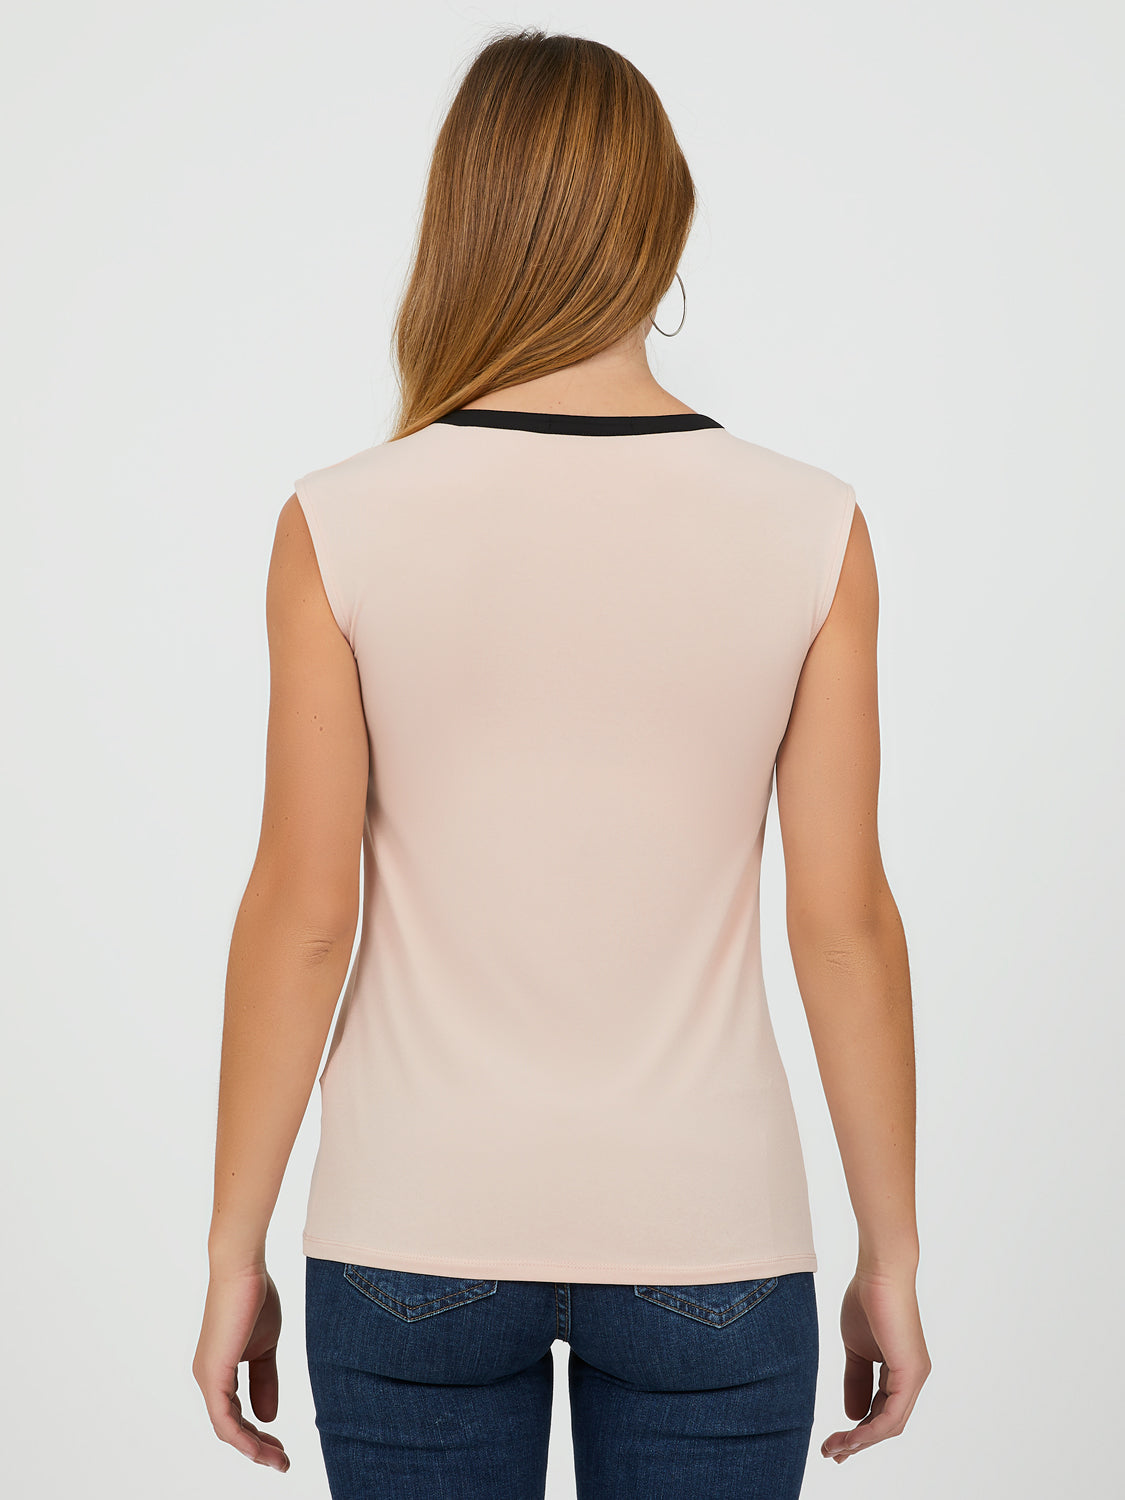 Sleeveless Contrast Trim Top